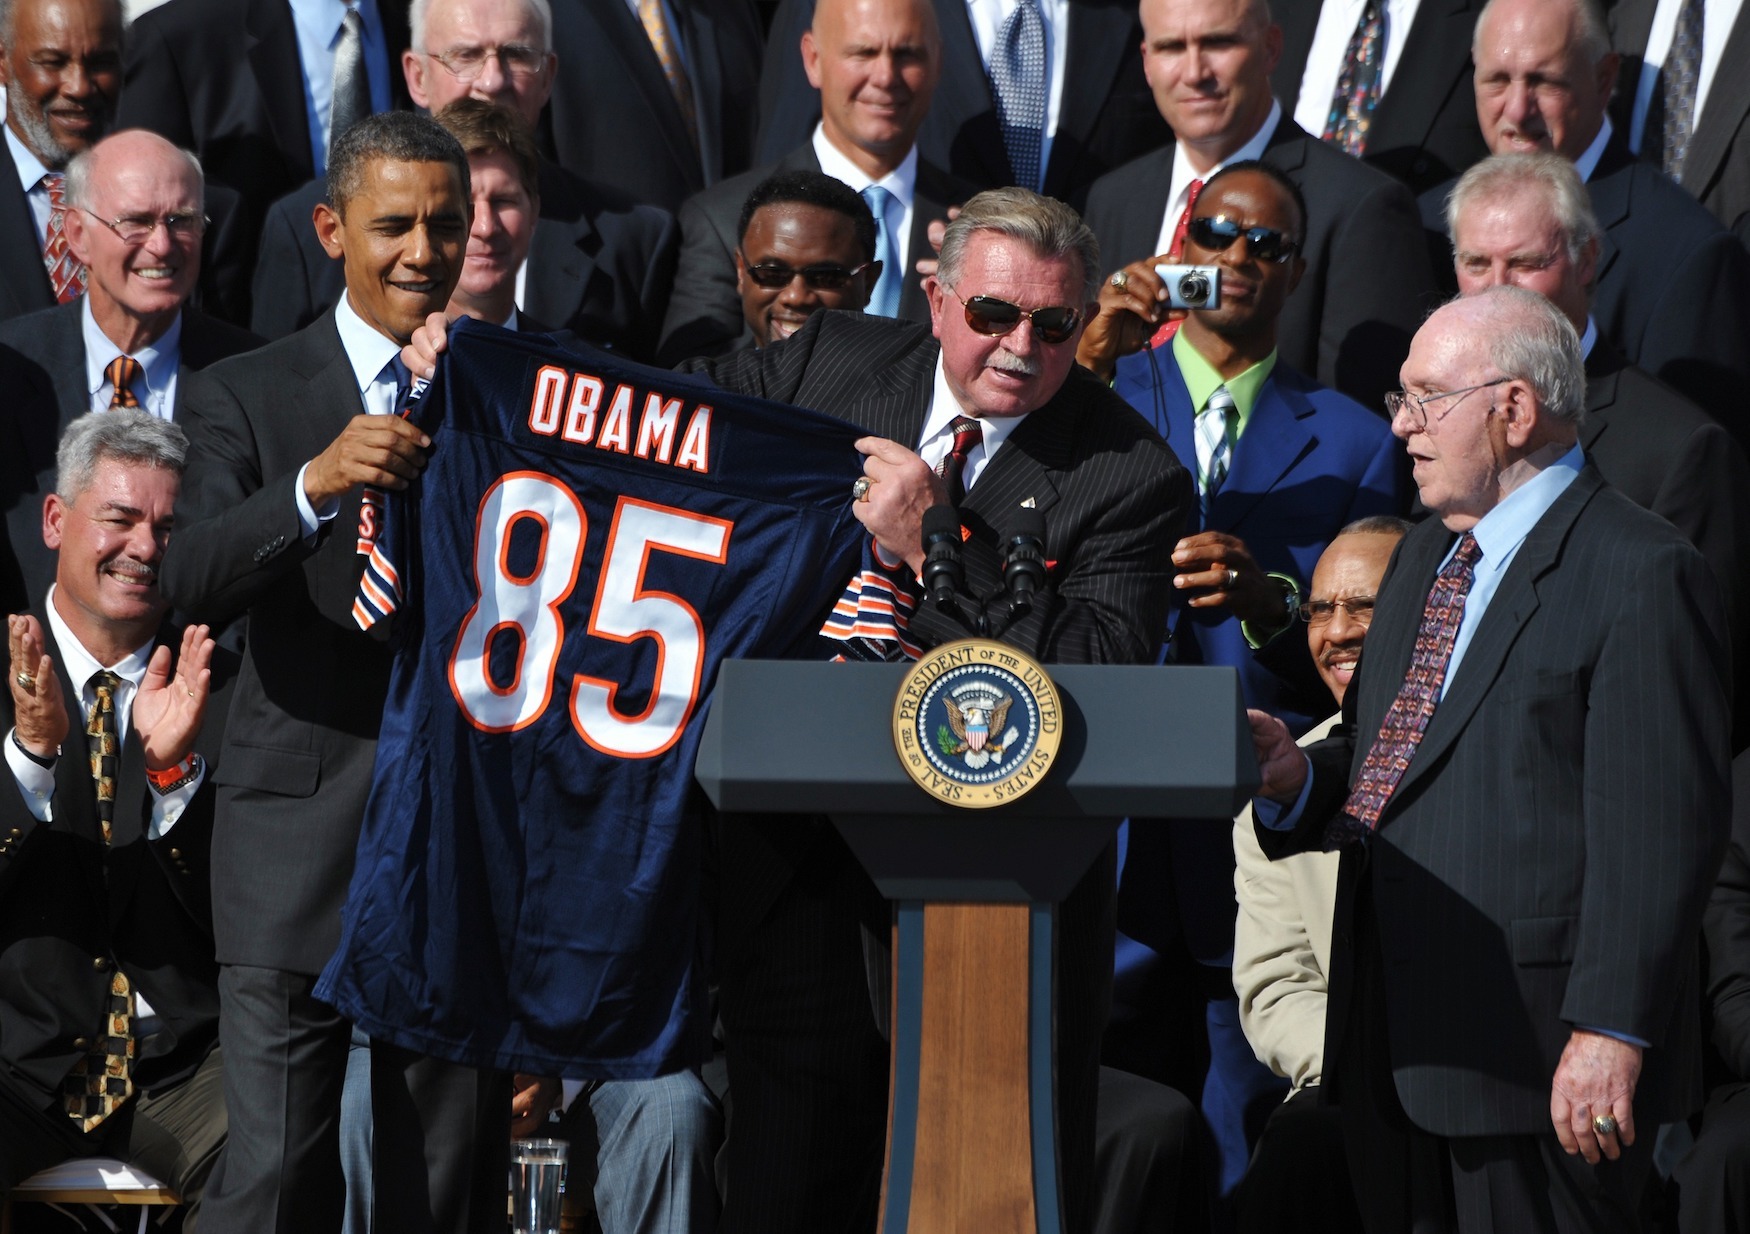 Mike Ditka could have run against Barack Obama in 2004, but decided against it.